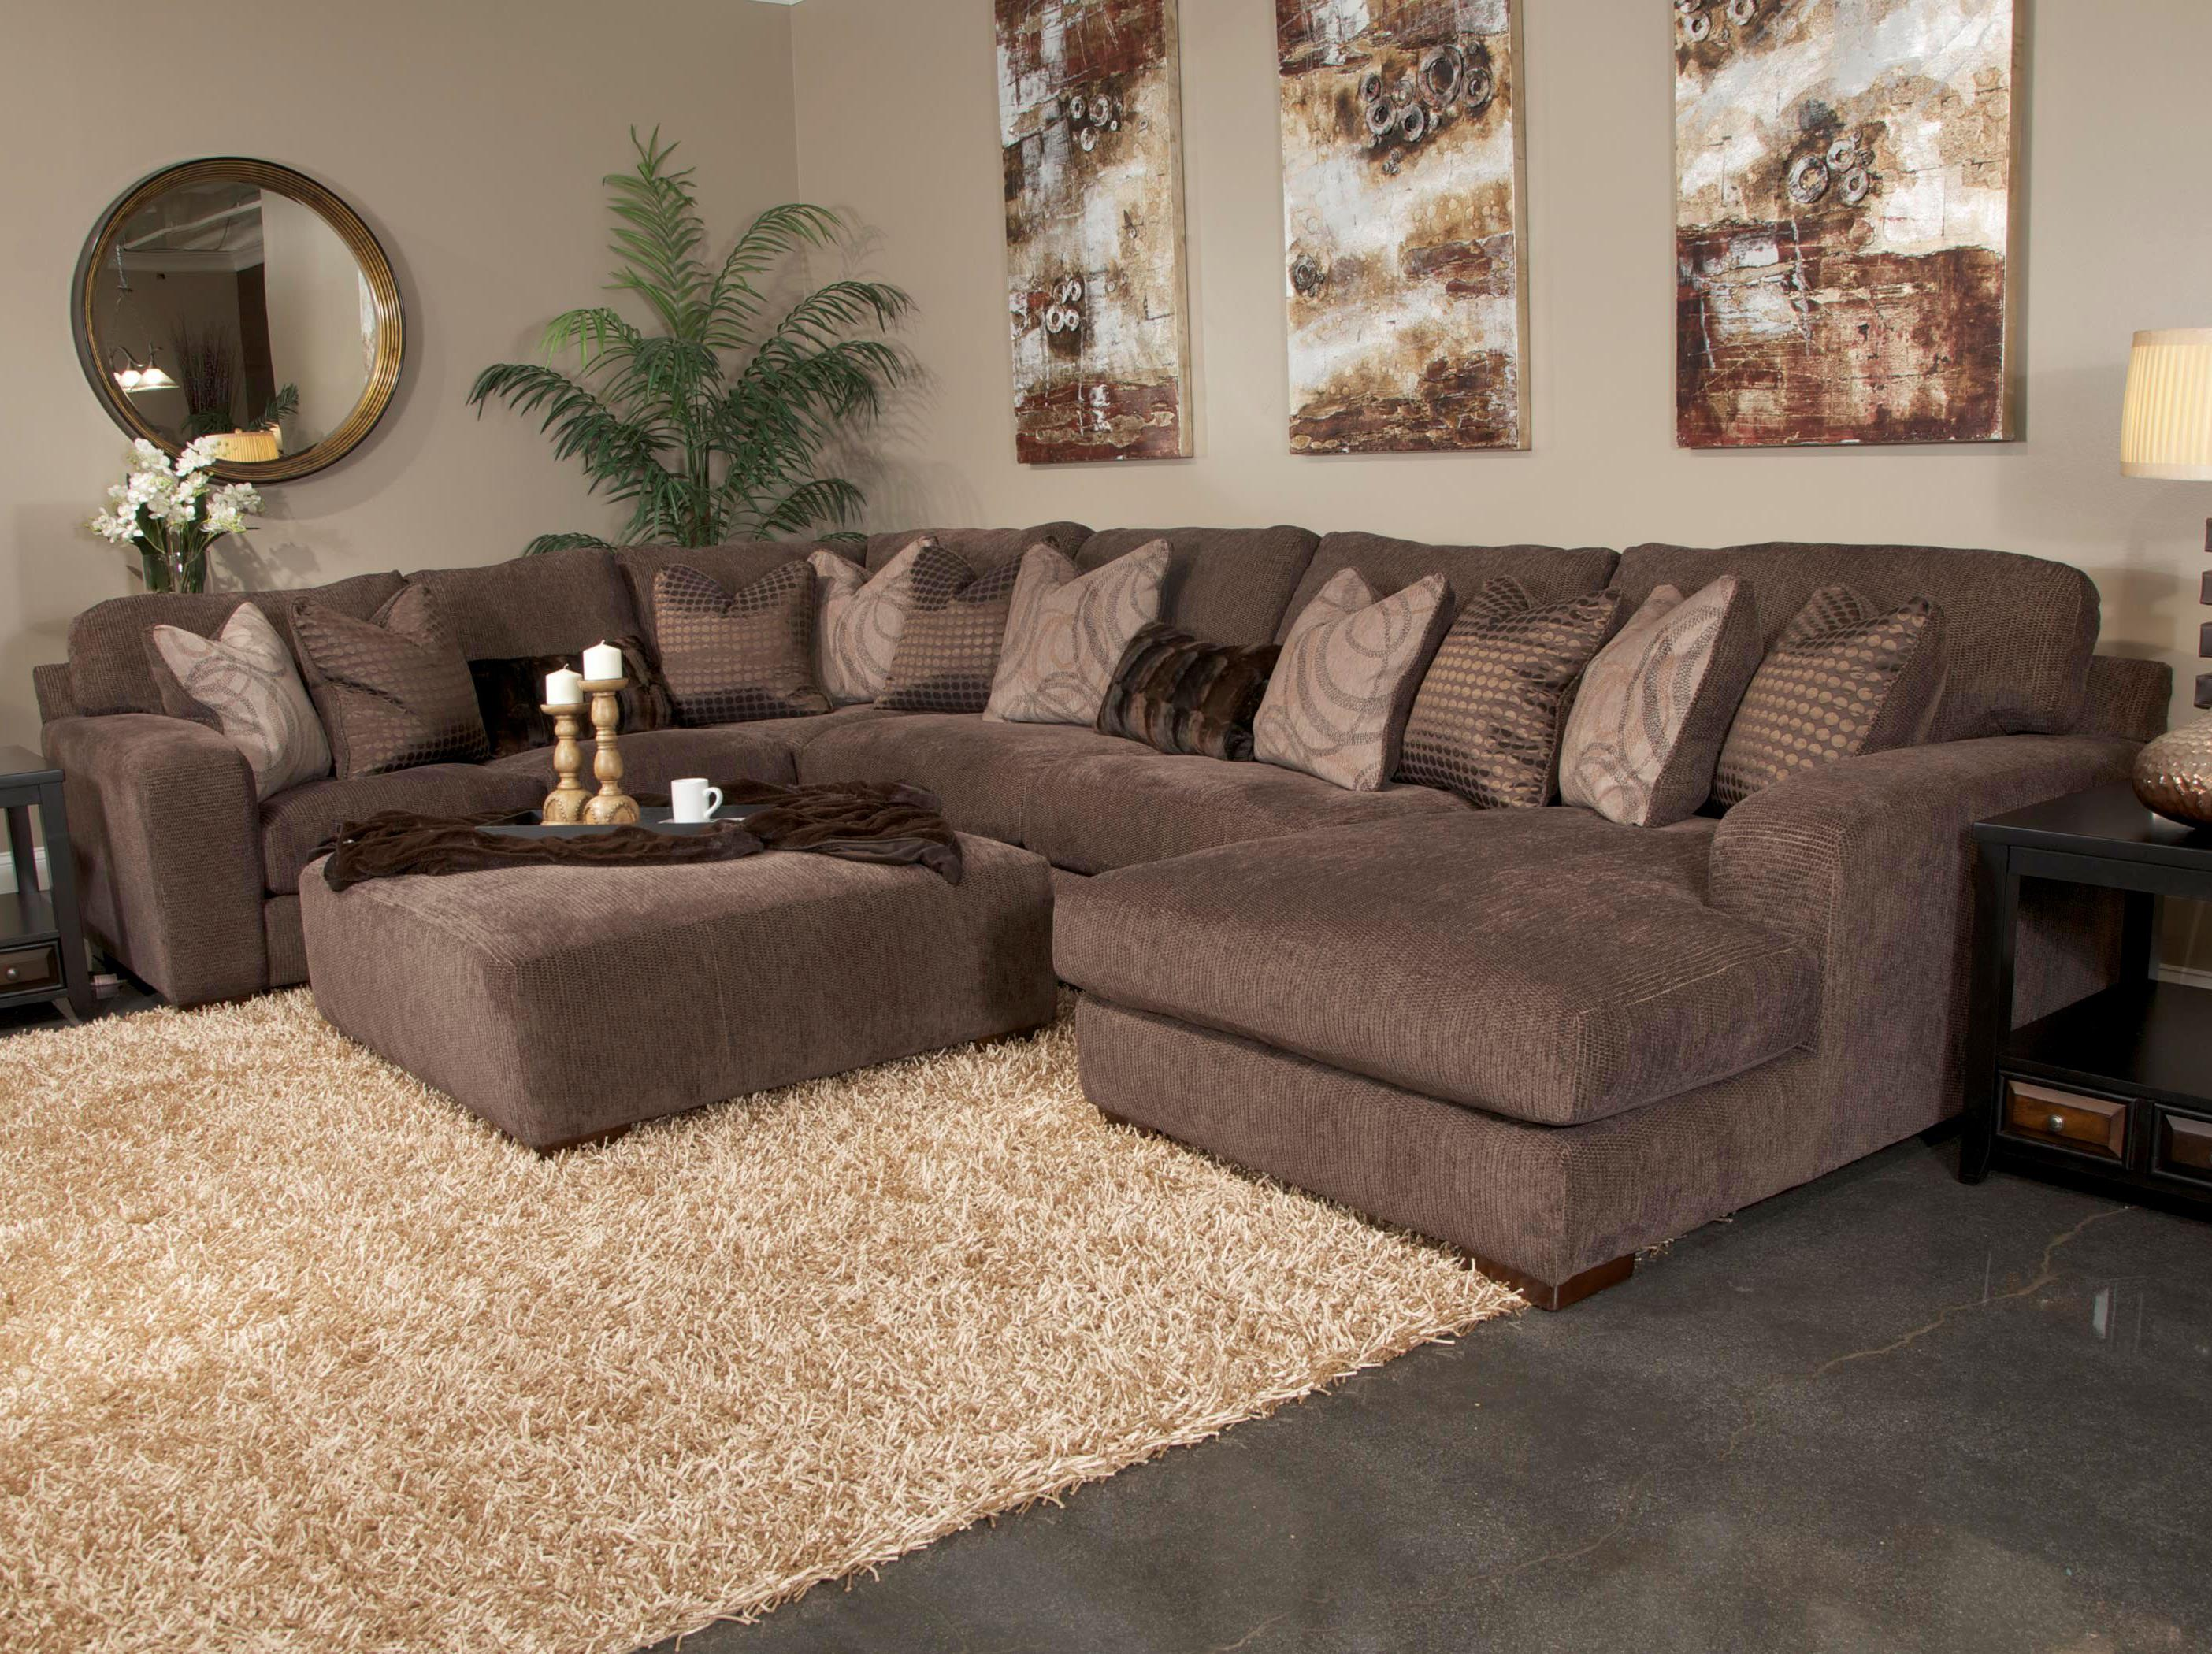 Five Seat Sectional Sofa with Chaise on Right Side by Jackson